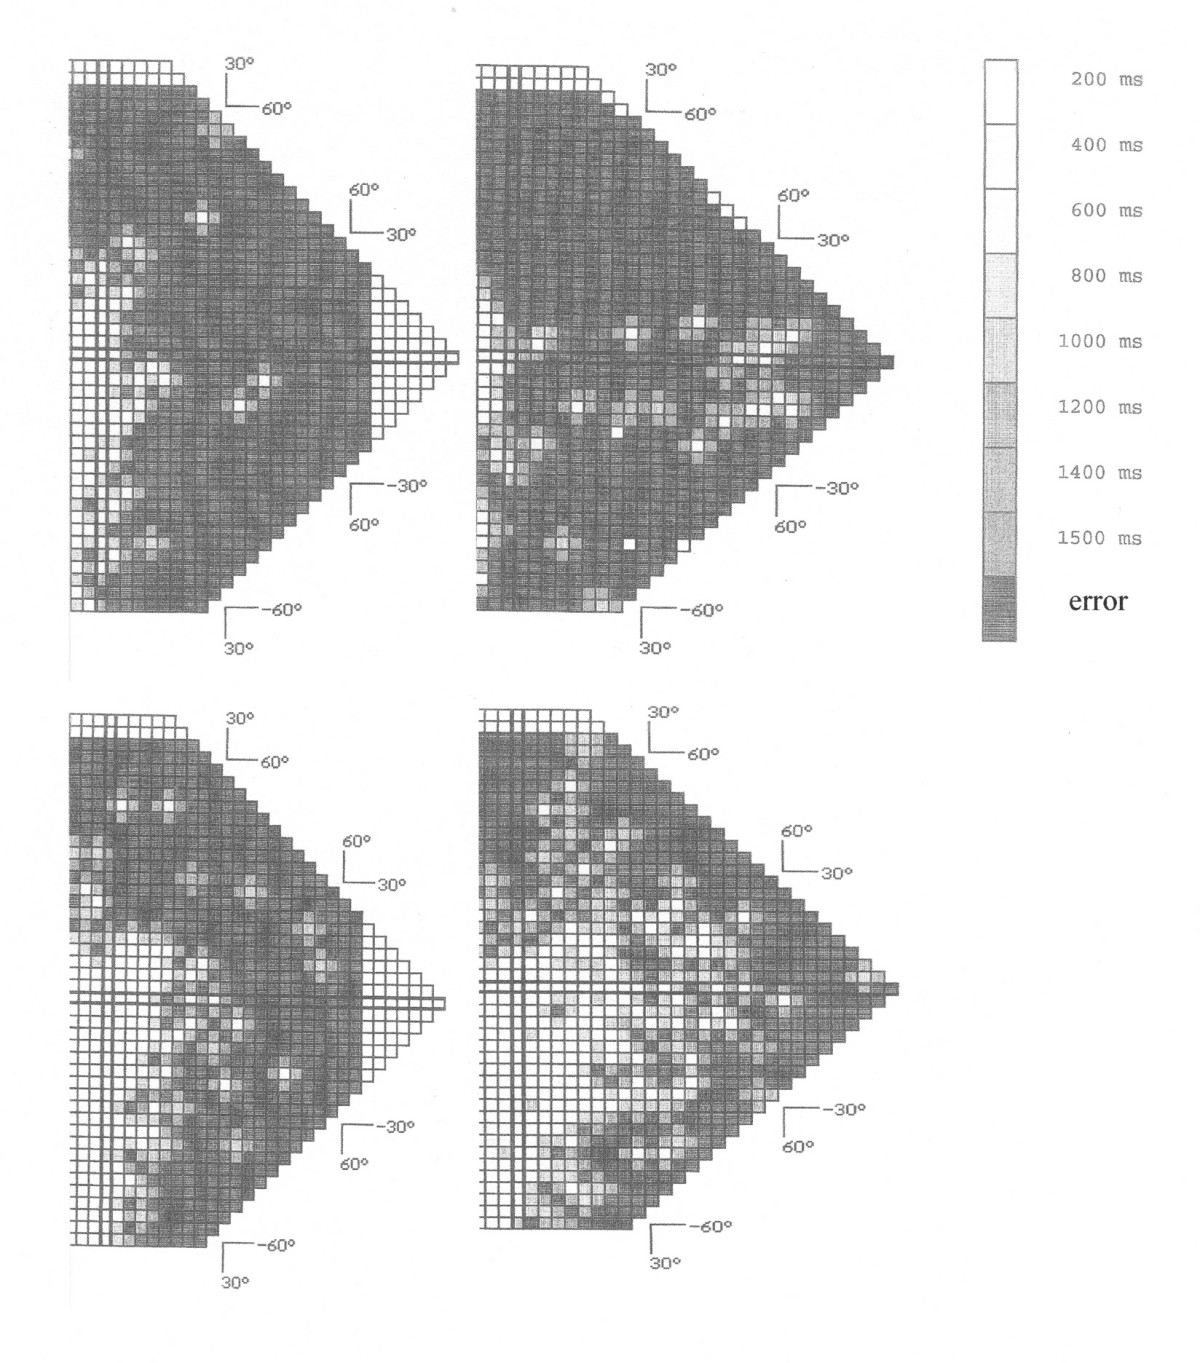 https://static-content.springer.com/image/art%3A10.1186%2F1743-0003-4-31/MediaObjects/12984_2006_Article_107_Fig4_HTML.jpg